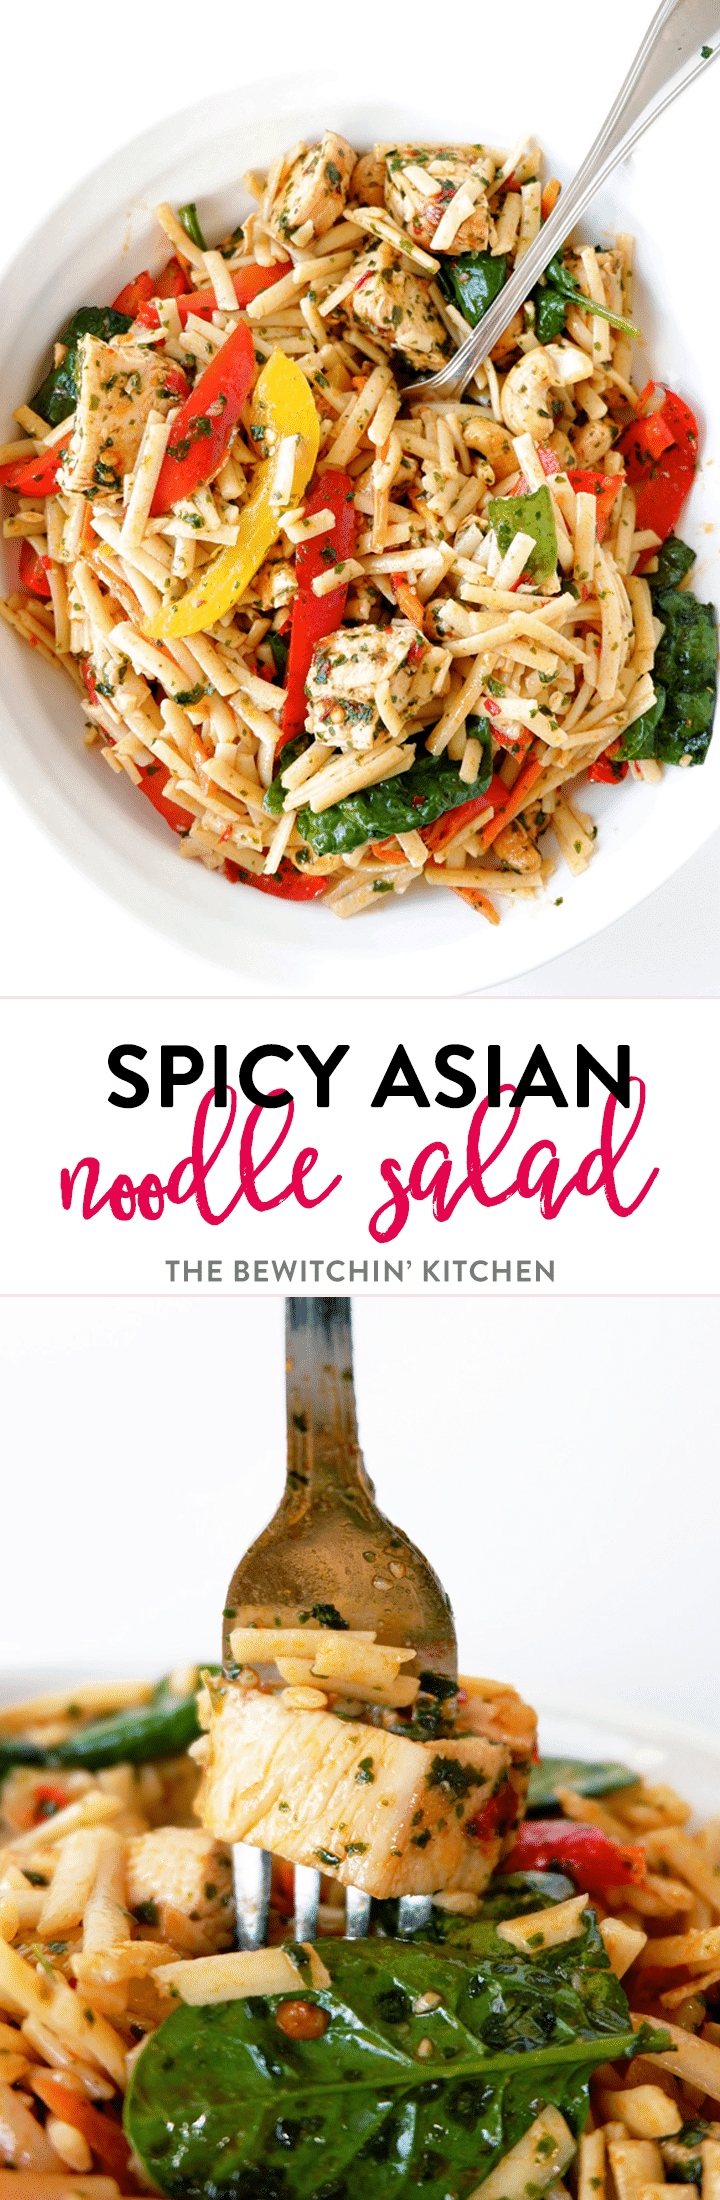 Spicy asian noodle salad with grilled chicken the bewitchin kitchen spicy asian noodle salad recipe a delicious cold pasta salad recipe with an asian dressing forumfinder Choice Image